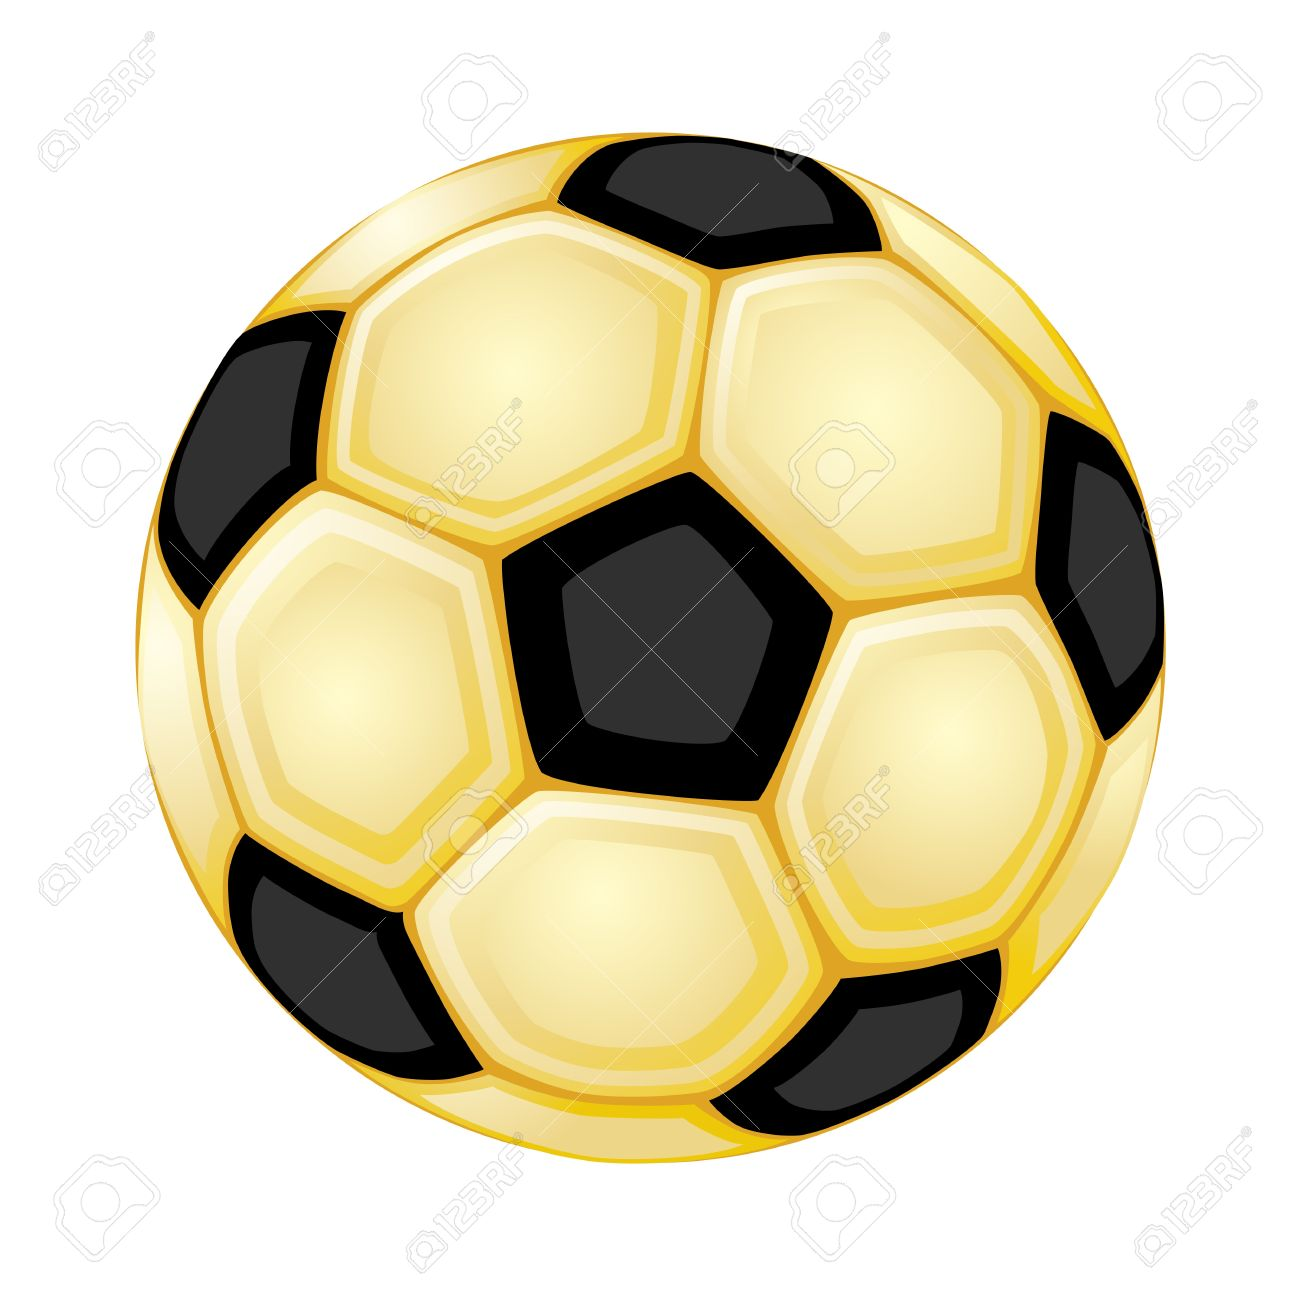 Soccer ball clipart eps picture freeuse download Soccer ball clipart eps - ClipartFest picture freeuse download